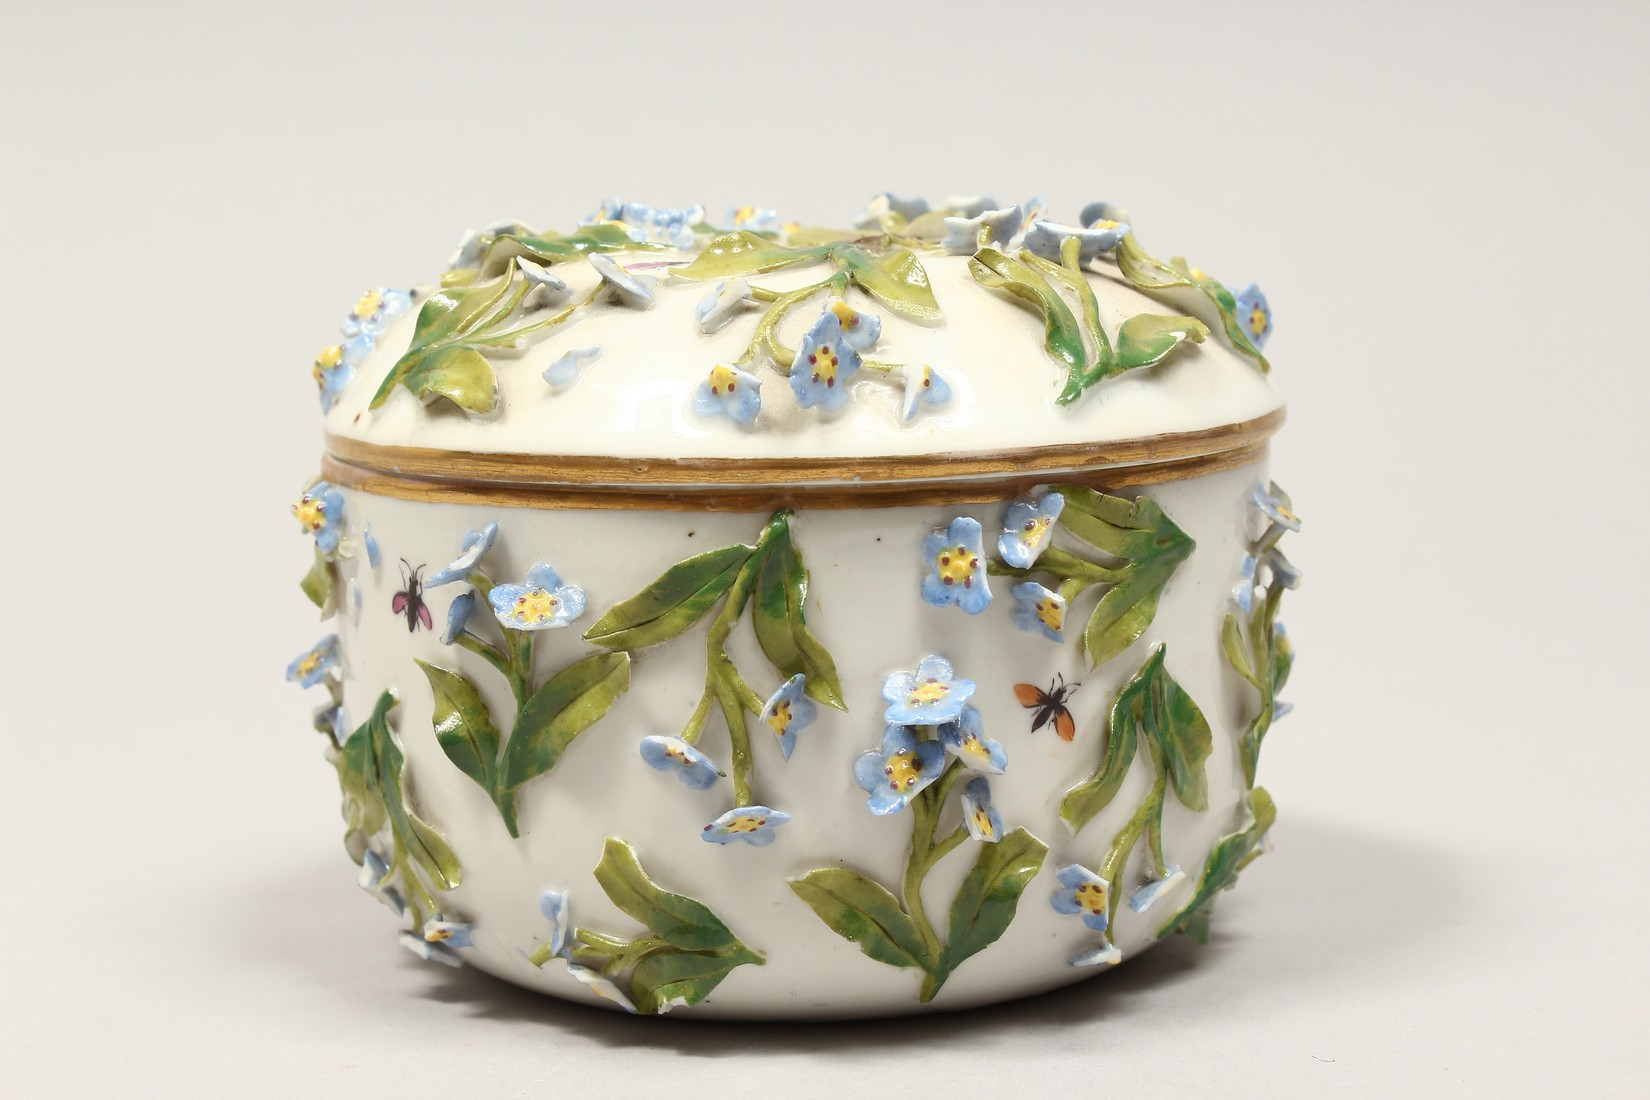 A DRESDON CIRCULAR BOWL AND COVER painted with moths and encrusted with flowers. 4.5ins diameter. - Image 4 of 8